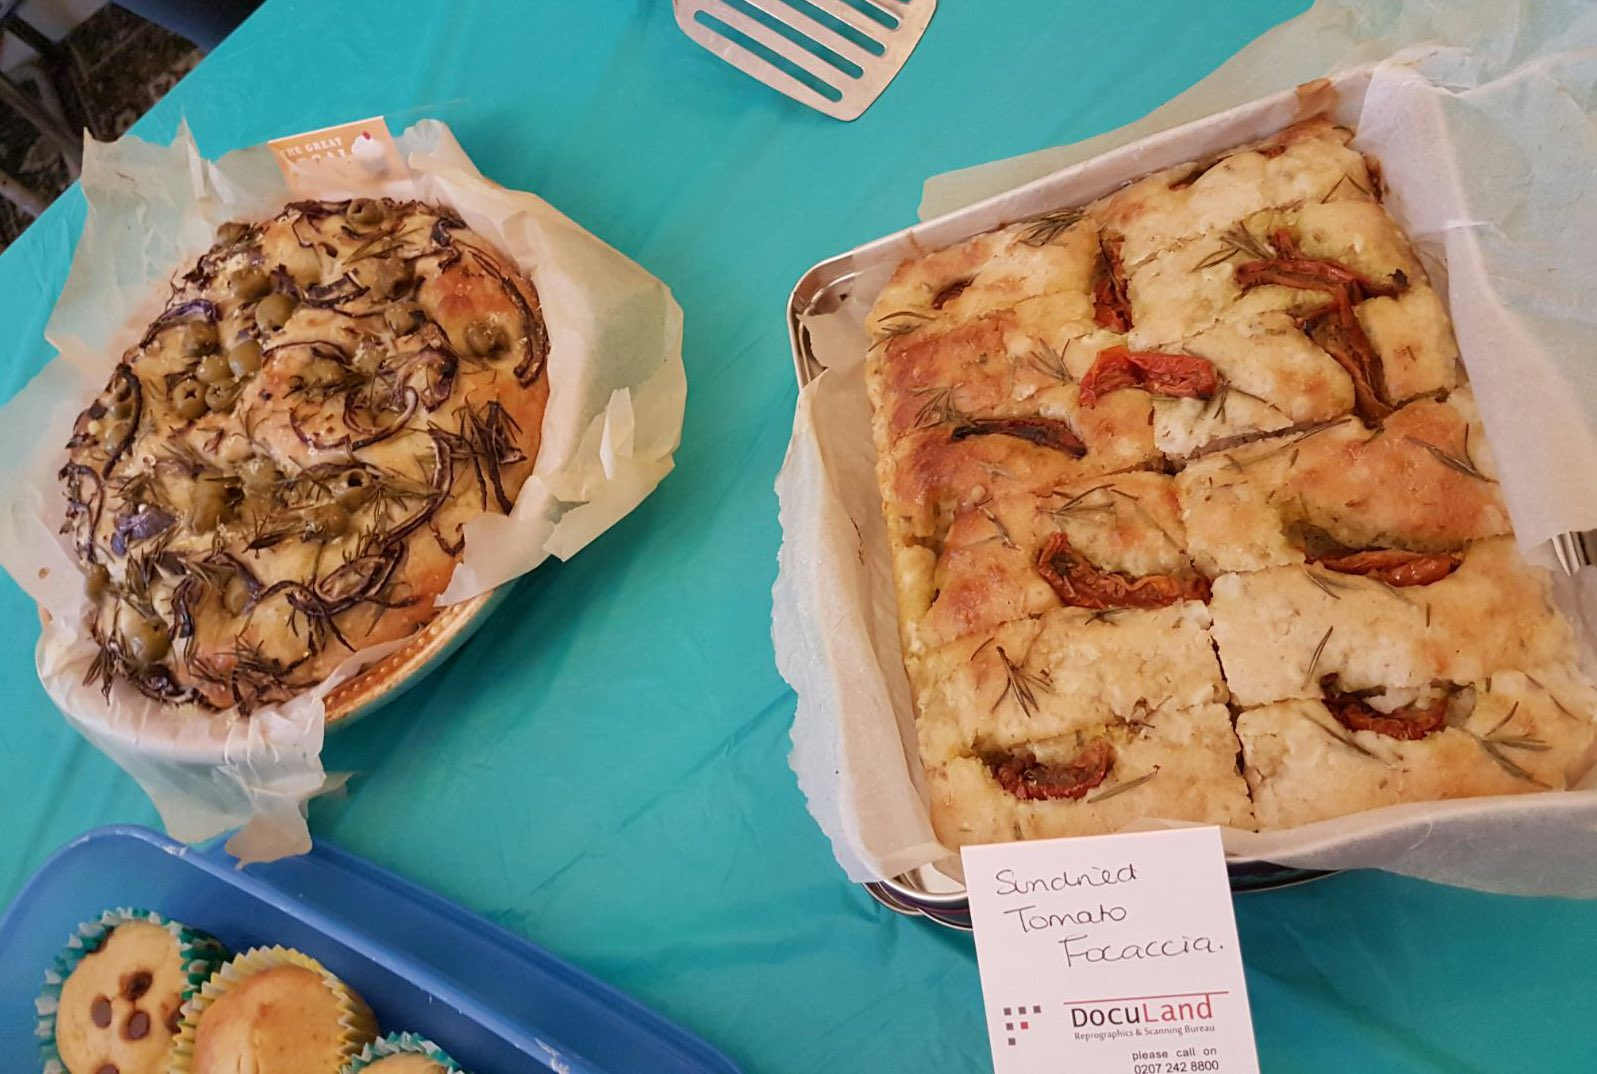 The focaccia baked by our @IsabelXWilson went down a treat! #GreatLegalBake @MidlandLST https://t.co/65KeTtbdmg